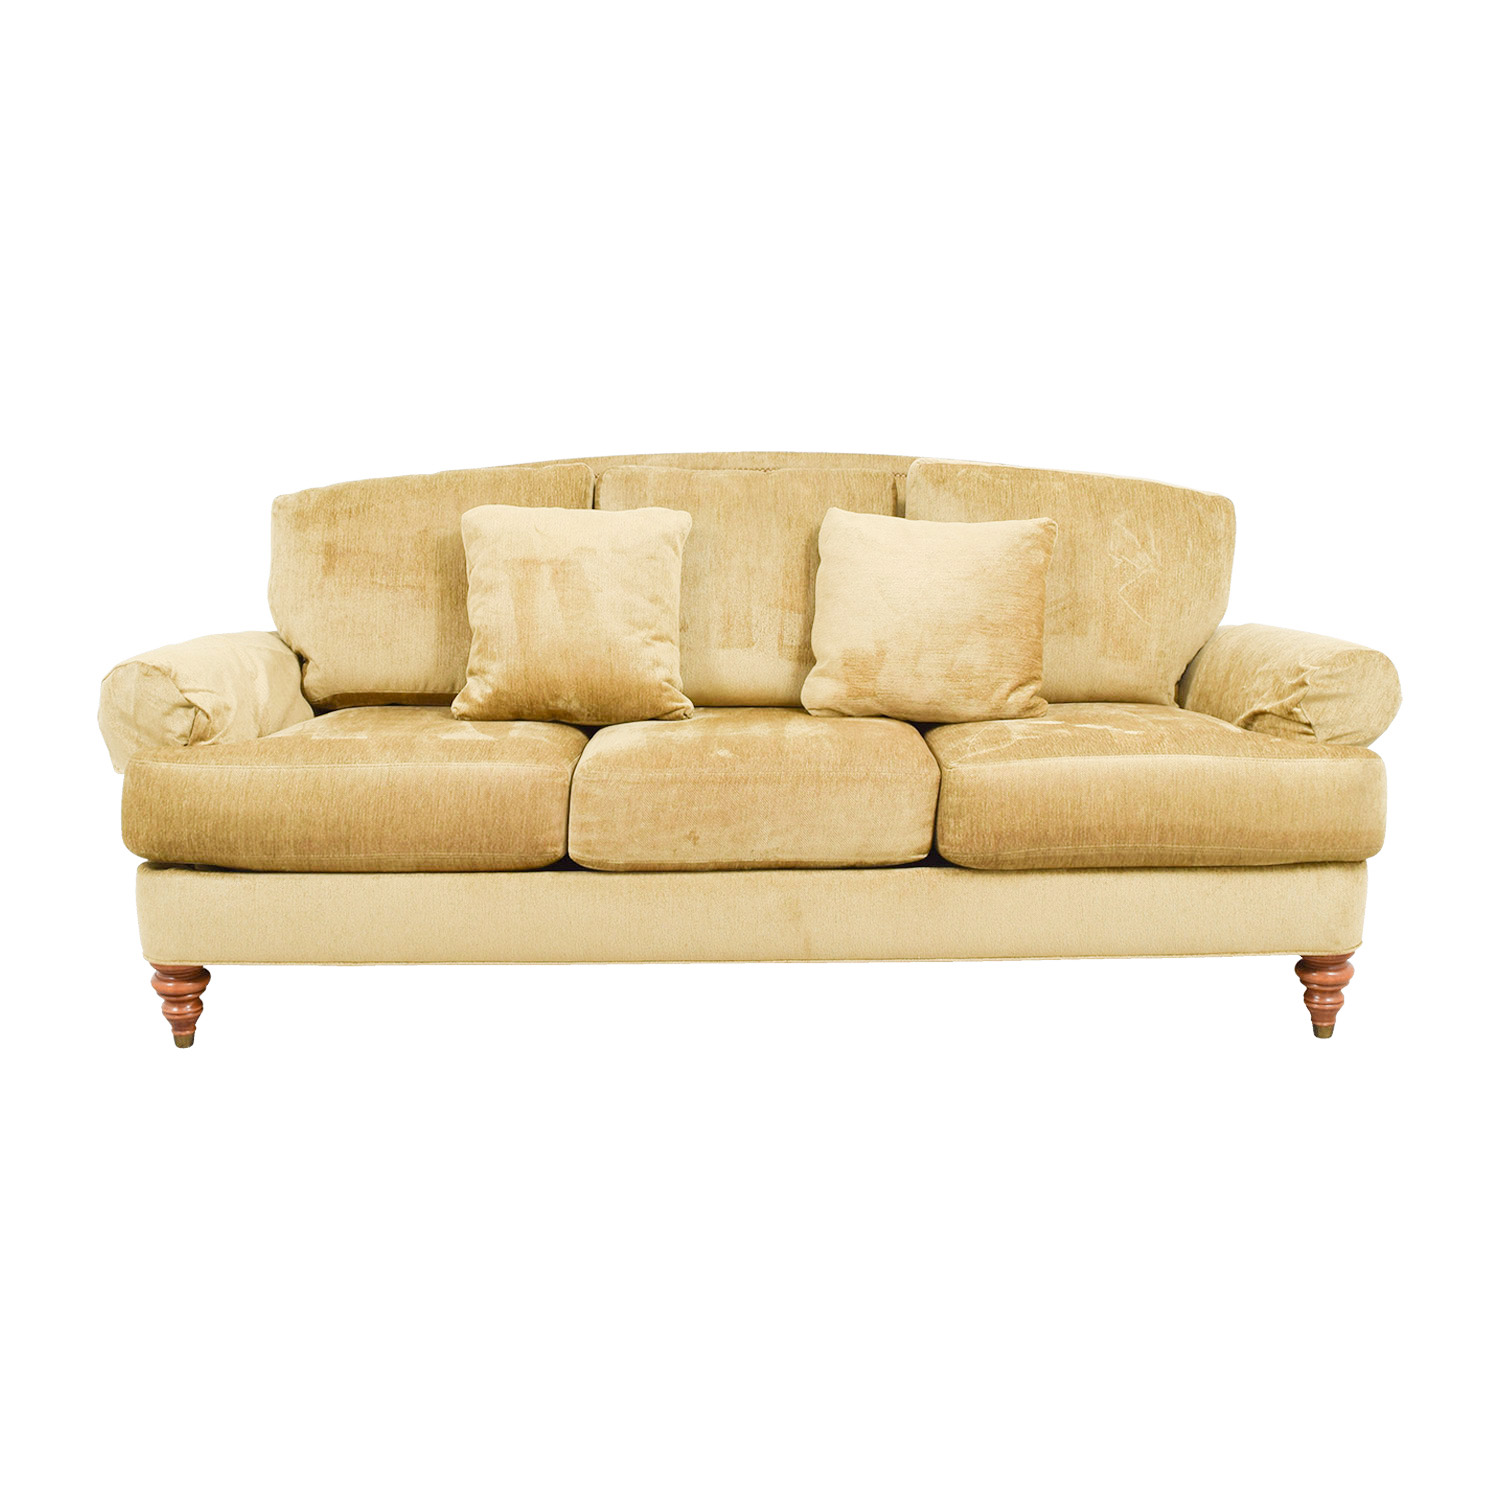 Ethan Allen Ethan Allen Hyde Gold Three Cushion Comfort Sofa For Sale ...